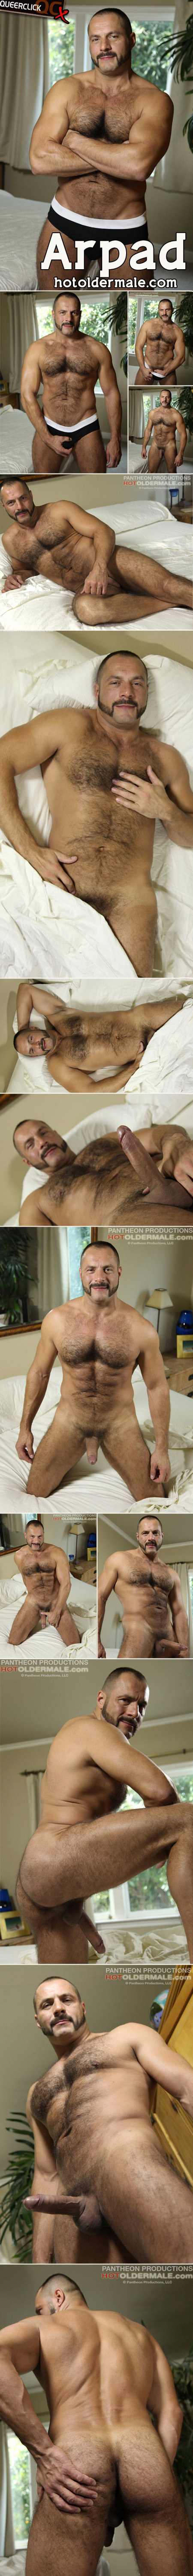 hot older male arpad miklos